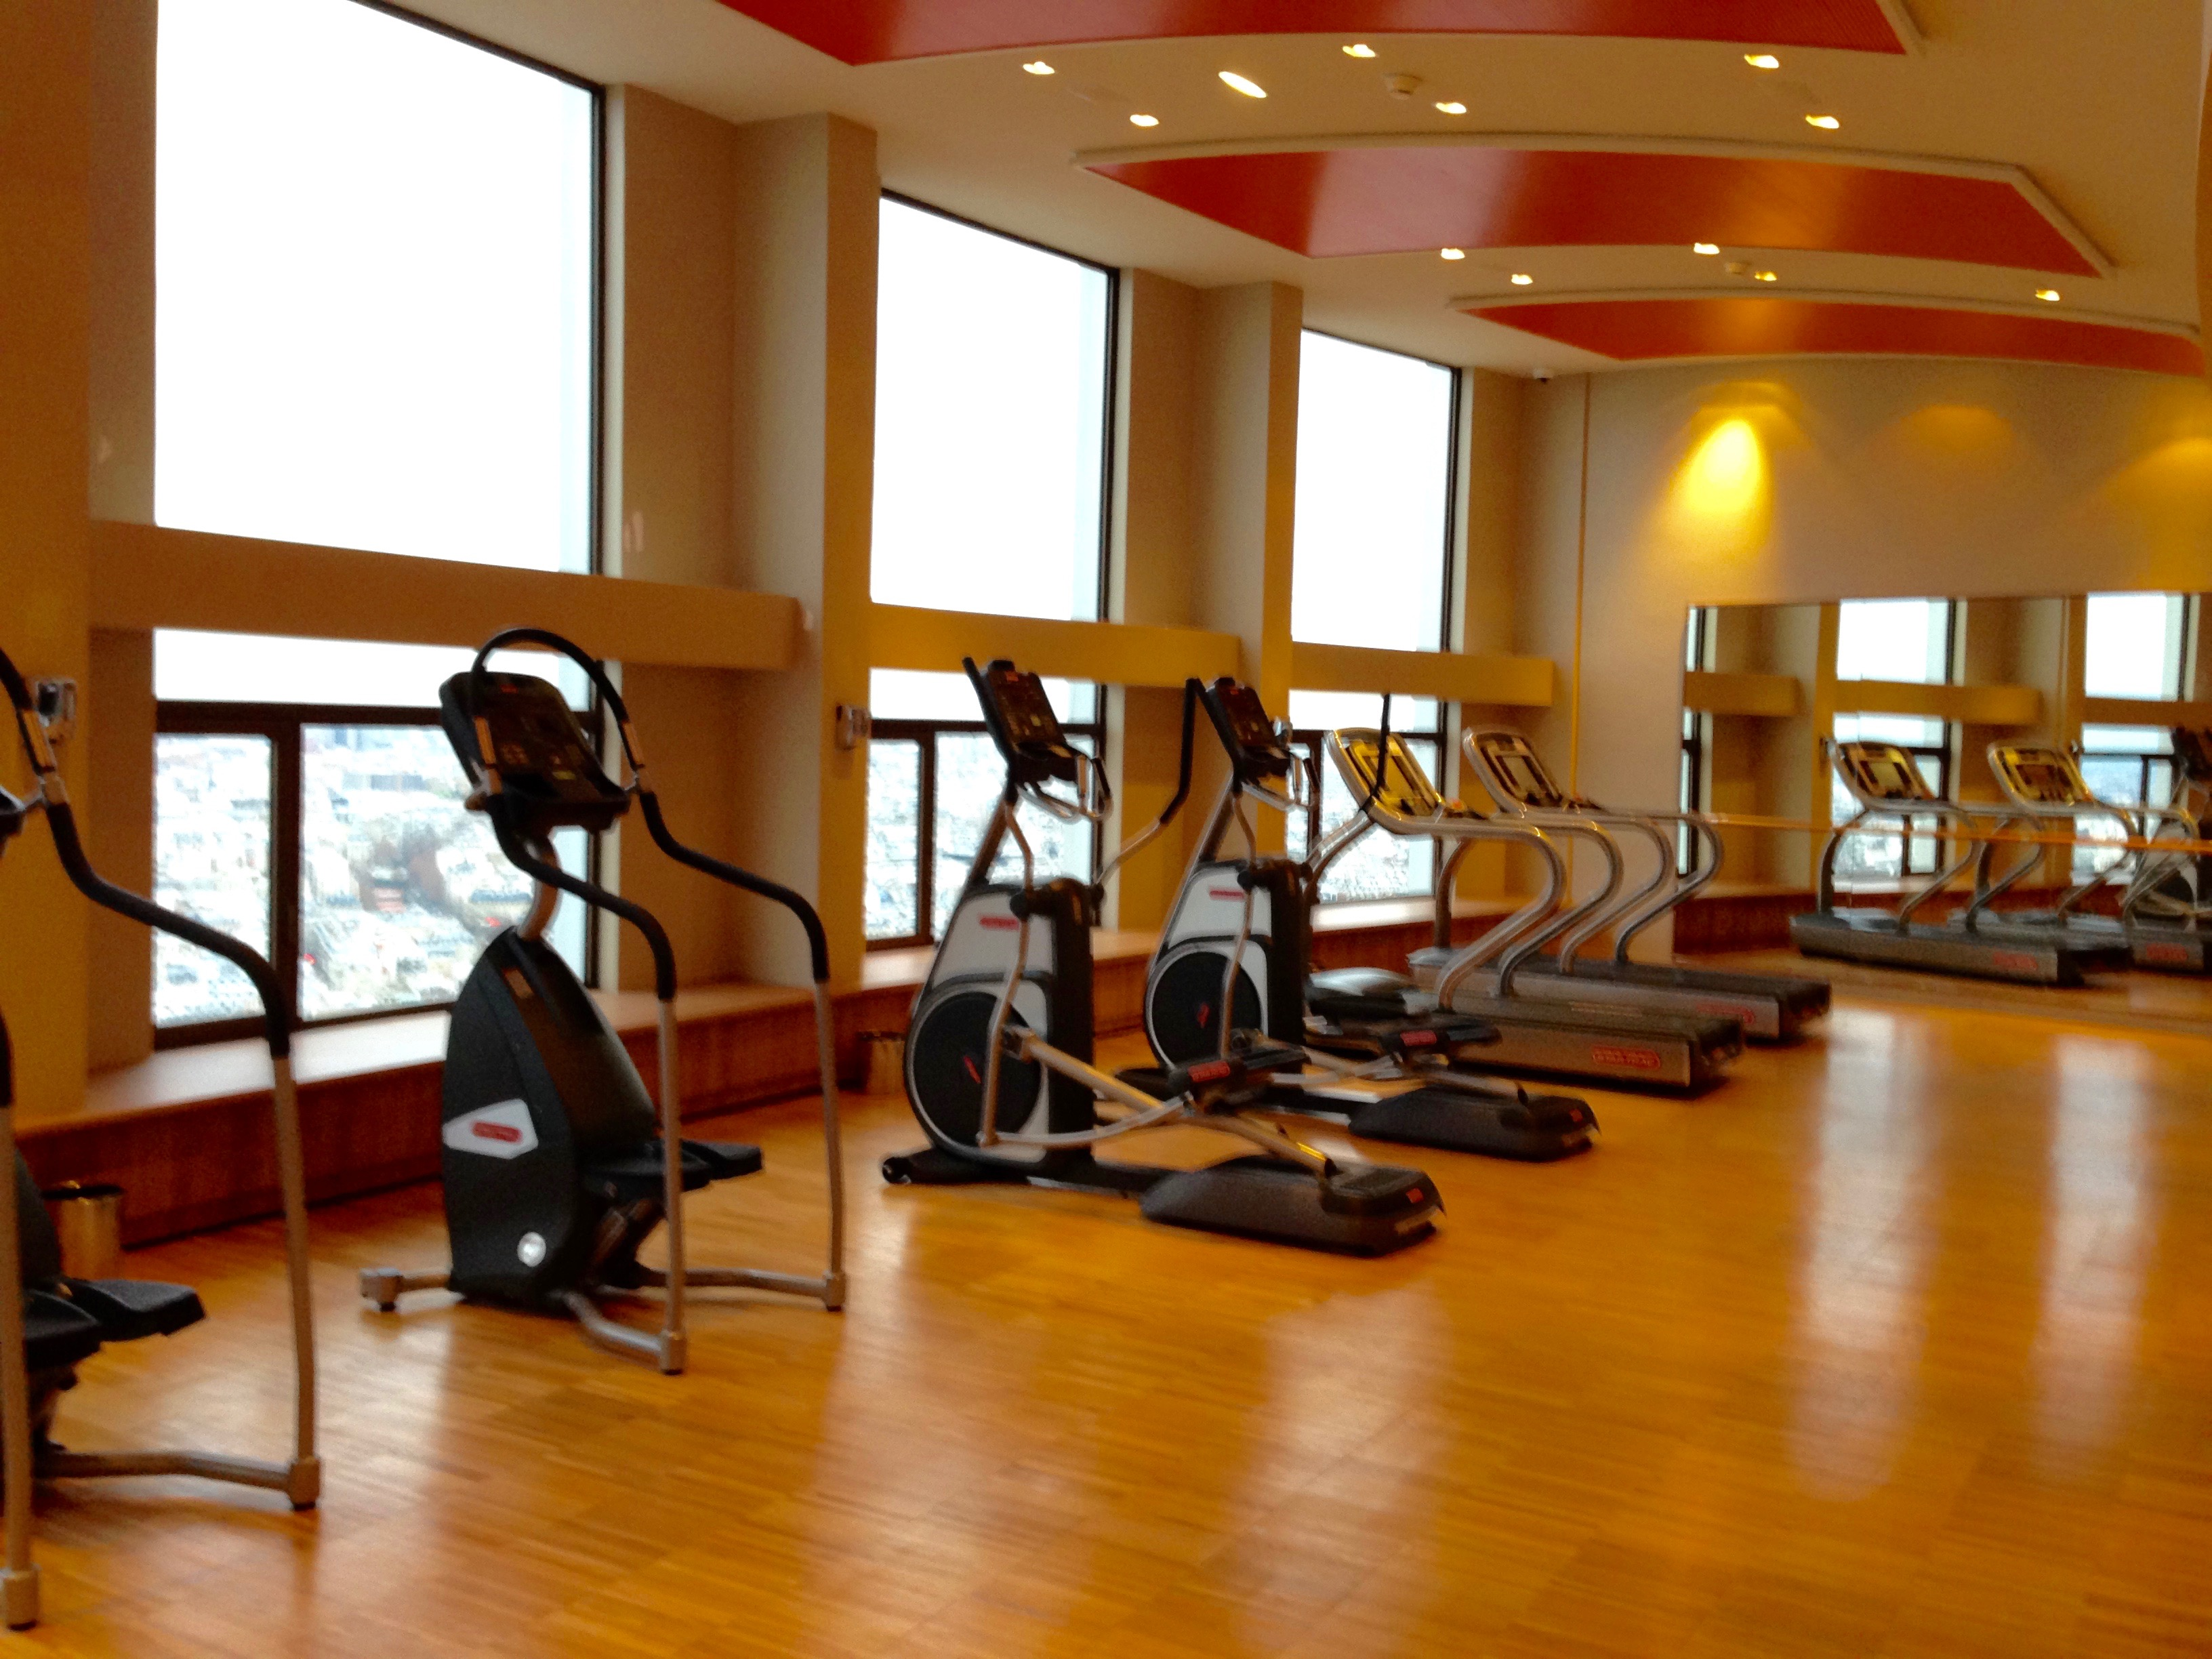 Hyatt Regency Paris Etoile Fitness Center